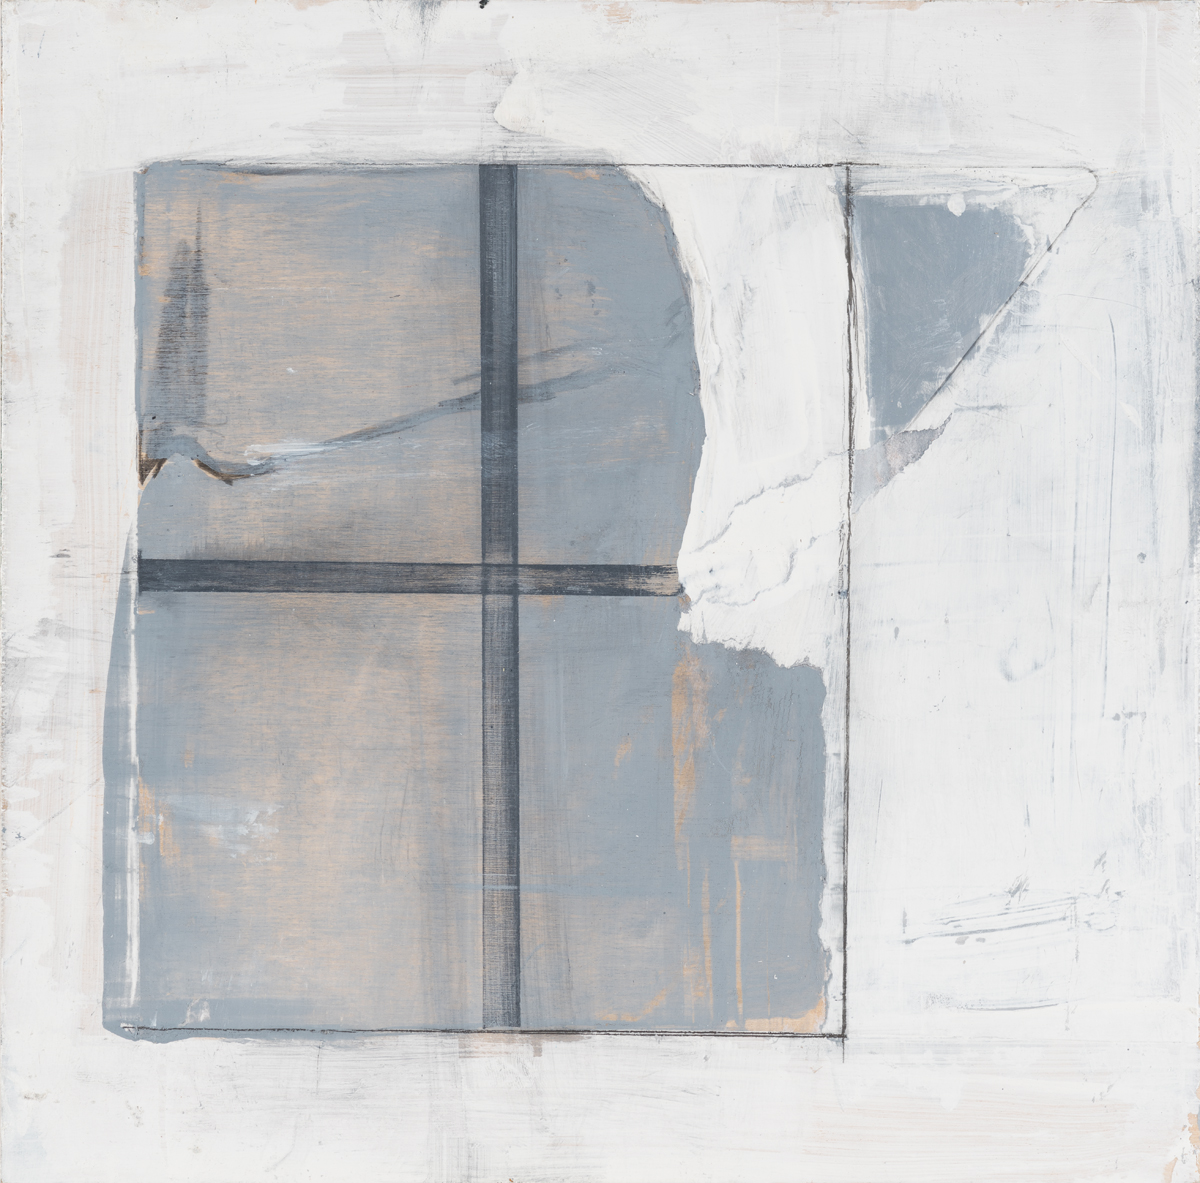 """Window with a torn shade , 2016. Acrylic and graphite on wood panel. 9-3/4""""x9-3/4"""""""